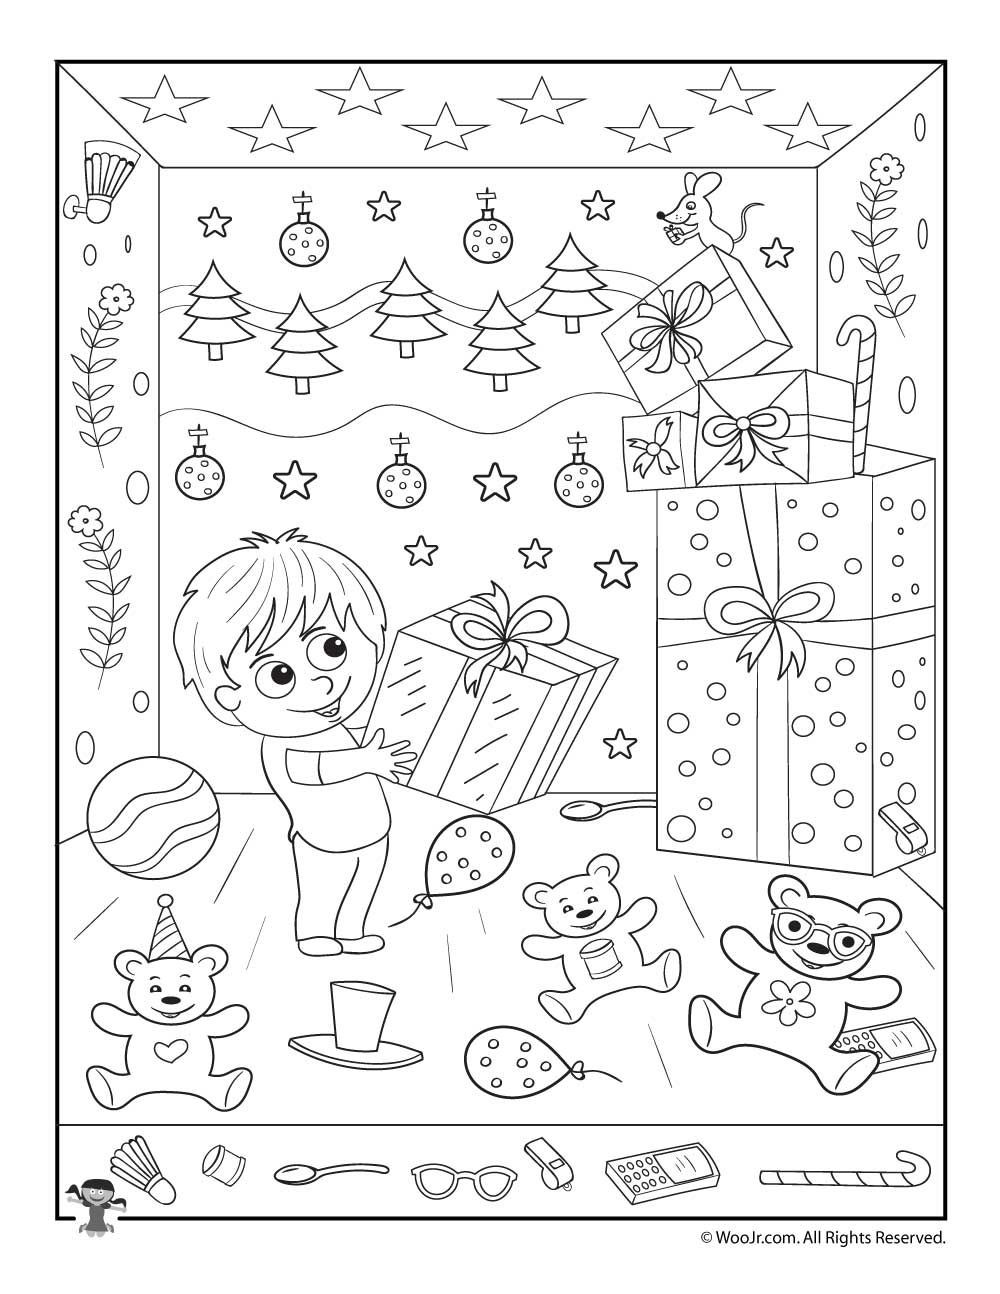 Christmas Hidden Picture Puzzles Printable Christmas Gifts Hidden Printable Activity Childrens